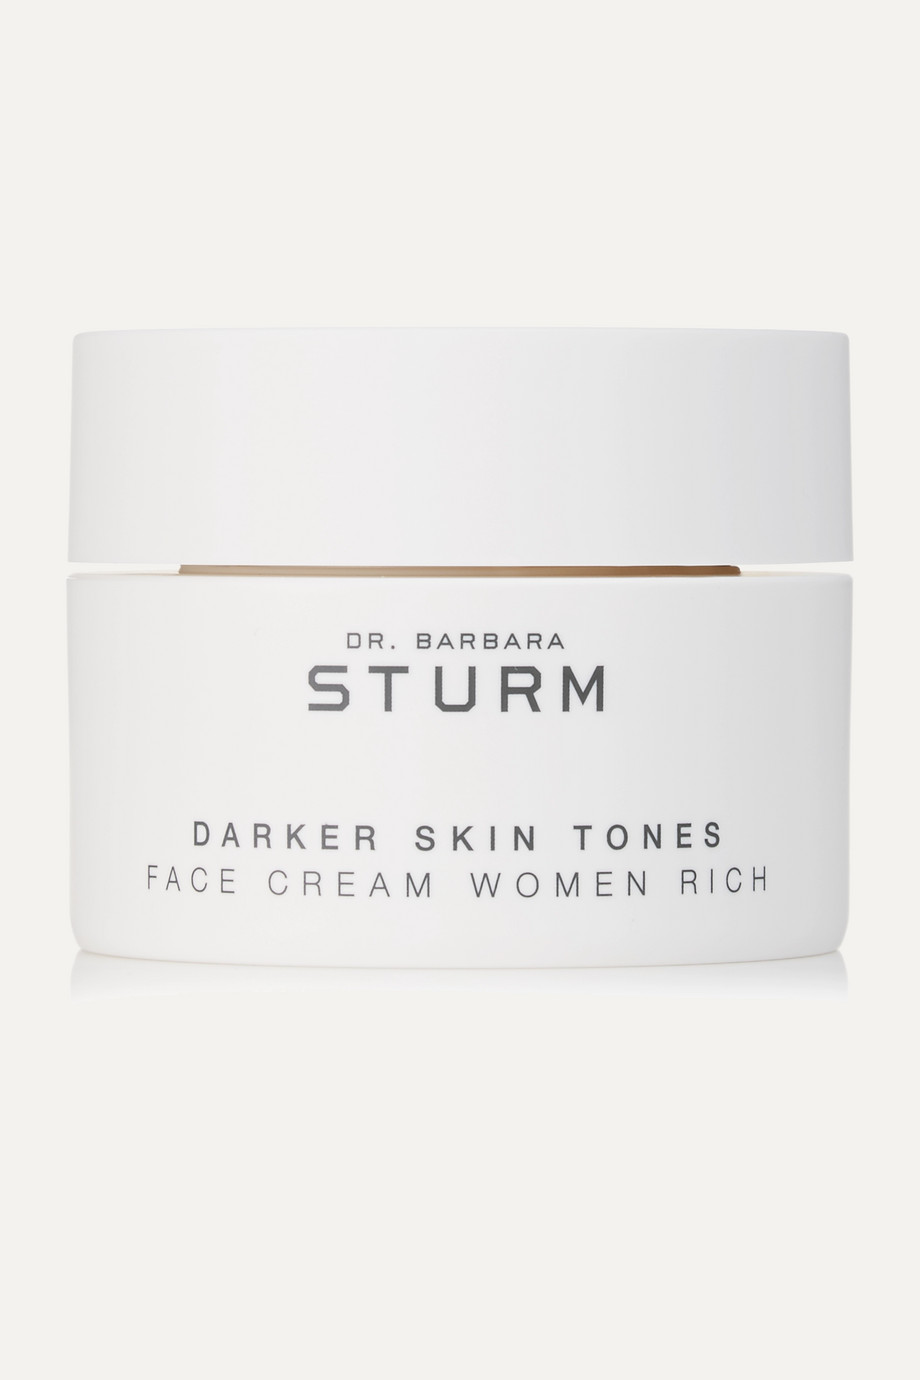 Dr. Barbara Sturm Darker Skin Tones Face Cream Rich, 50 ml – Gesichtscreme